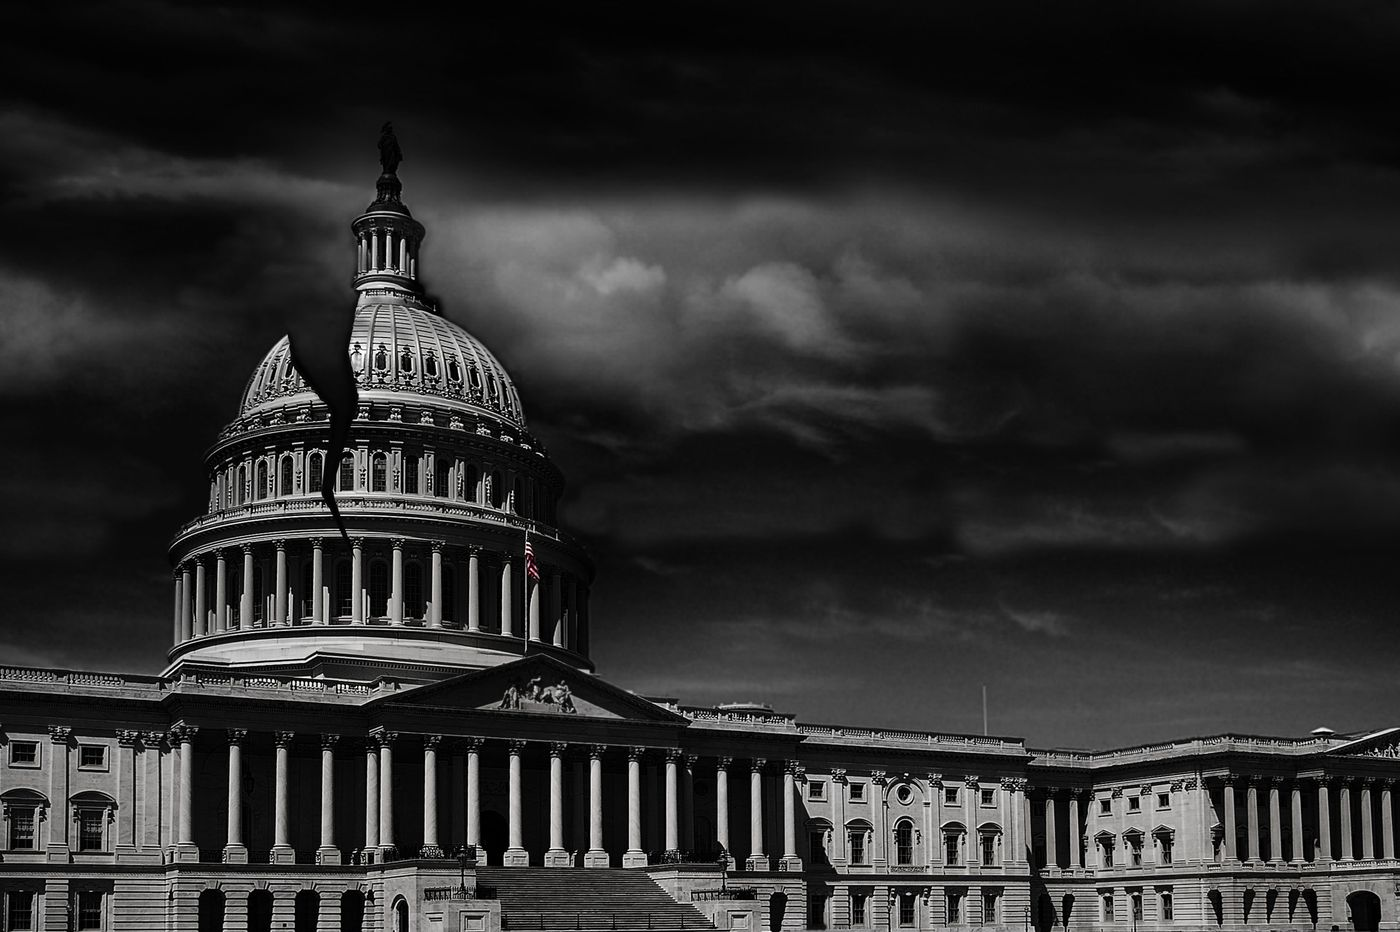 Congress, egged on by the polar extremes, is out of step with the rest of us   Michael Smerconish